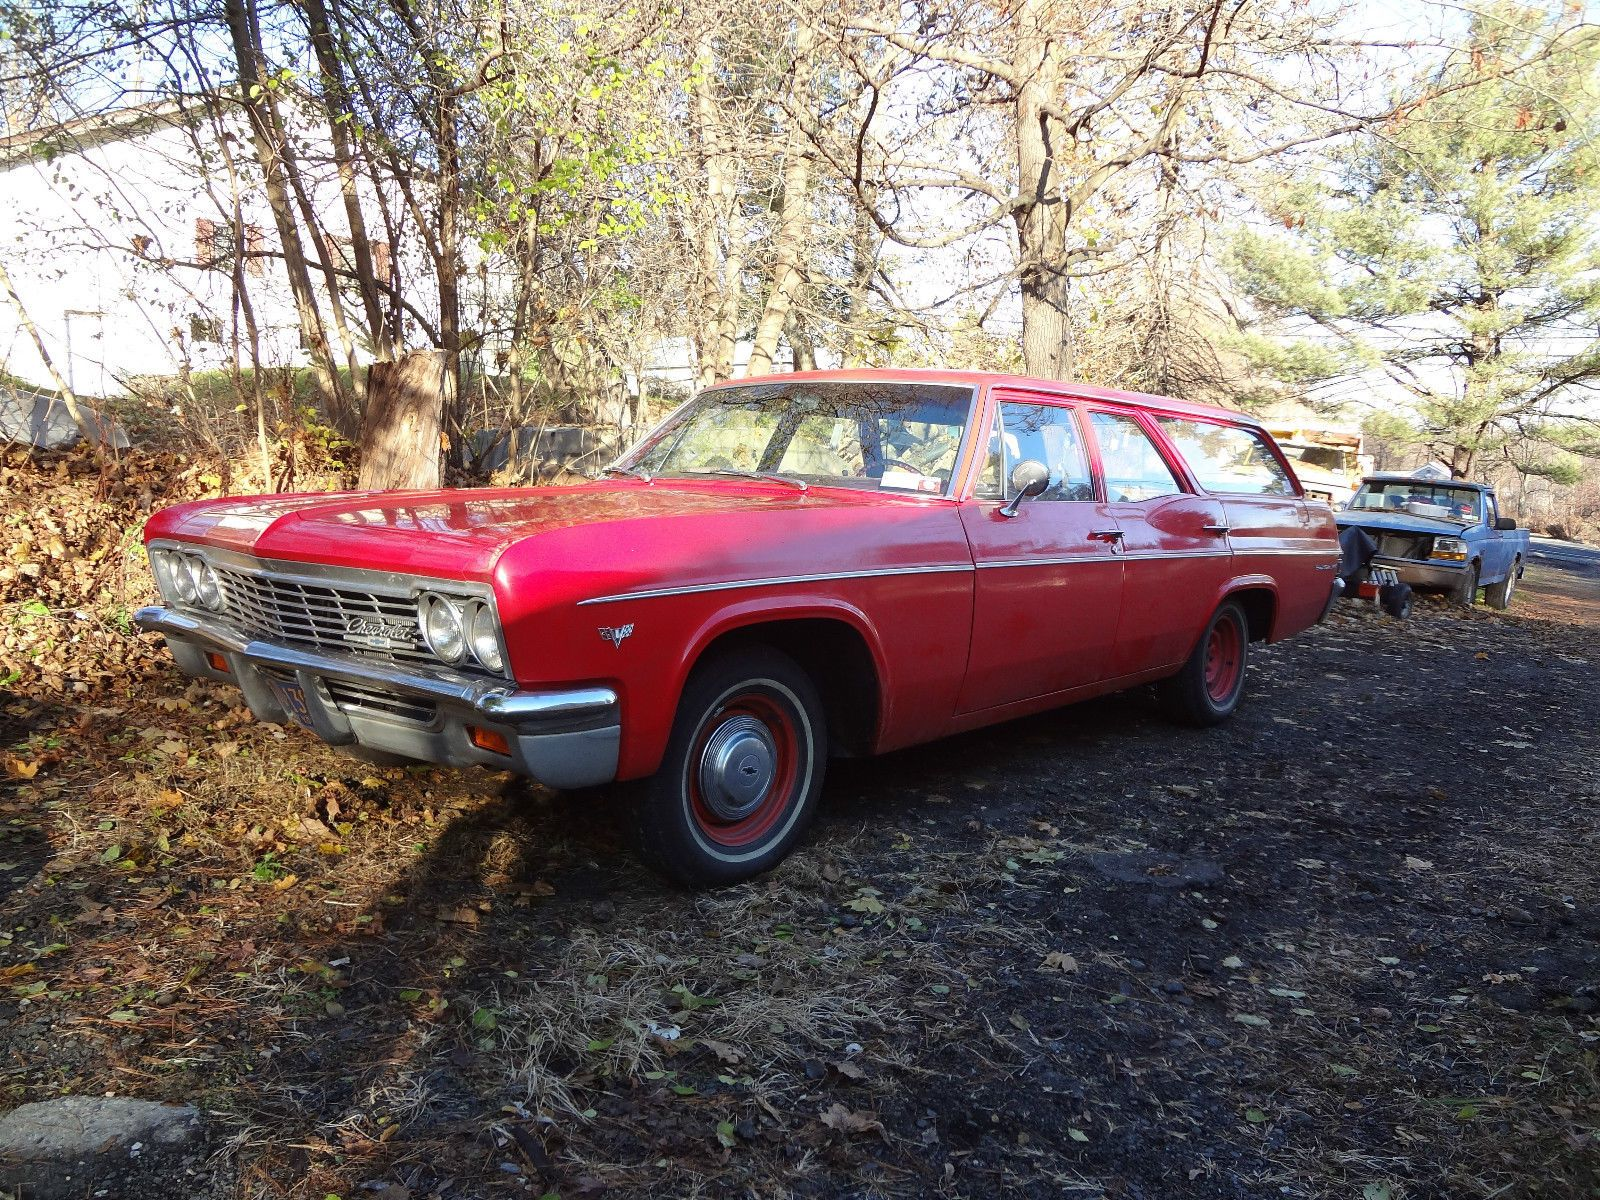 1966 Chevrolet Belair Station Wagon Recent Lhd Import These Were Bel Air Imported New In Small Numbers Rhd